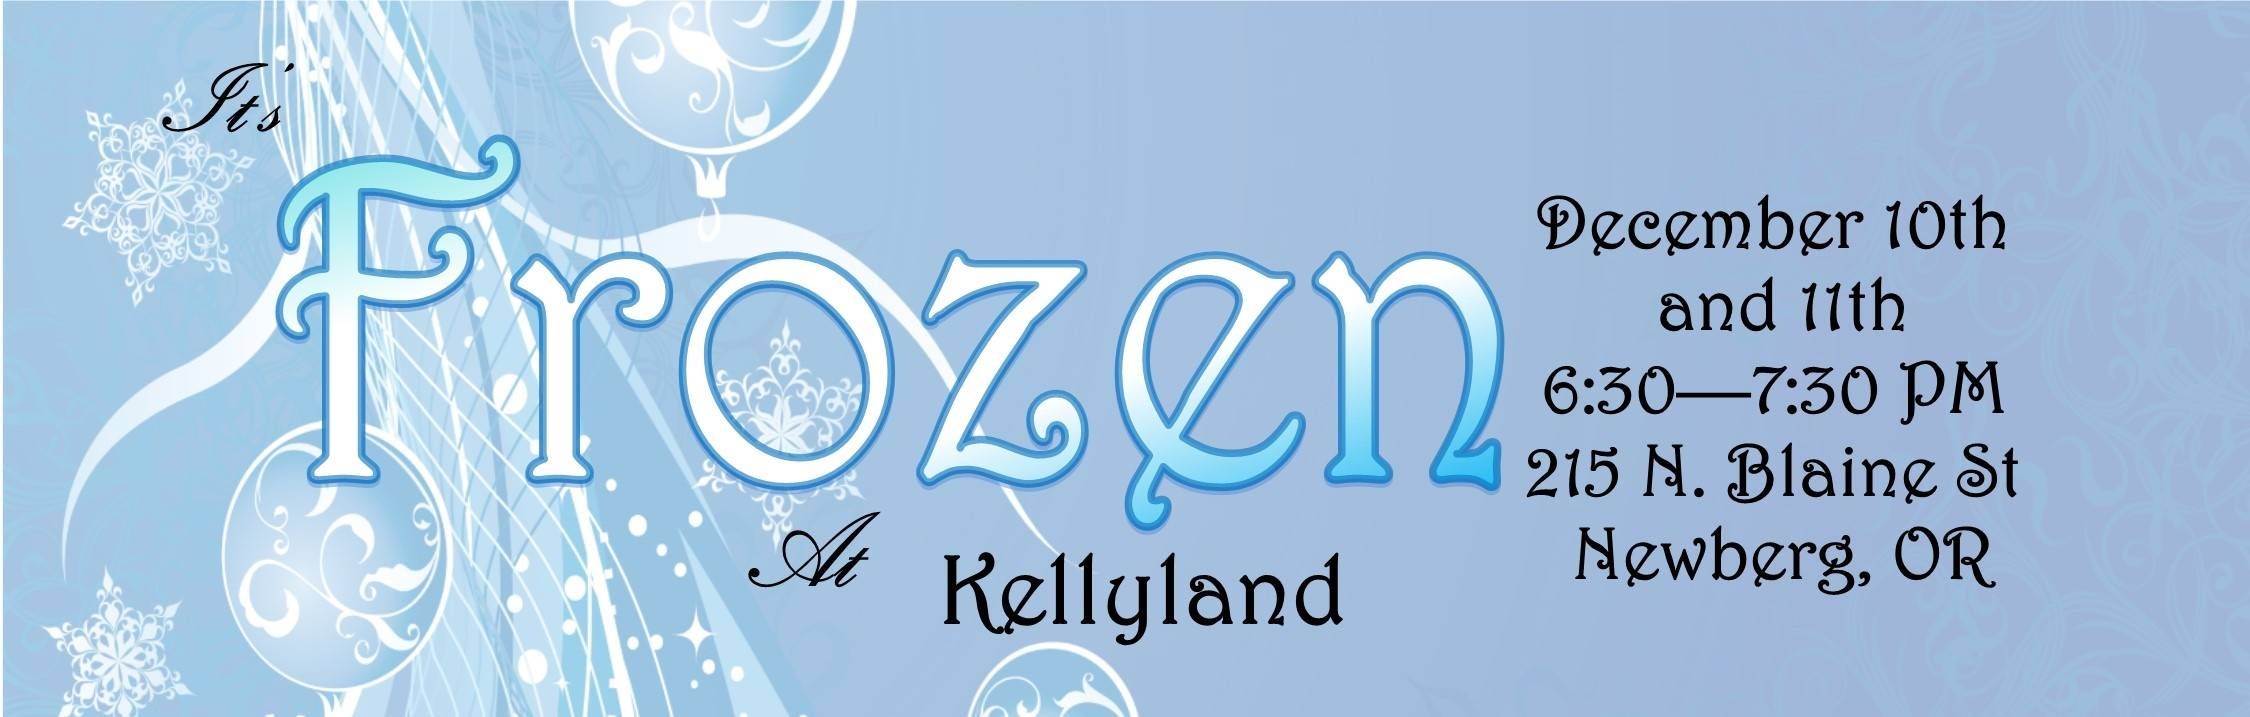 Frozen at Kelly Land